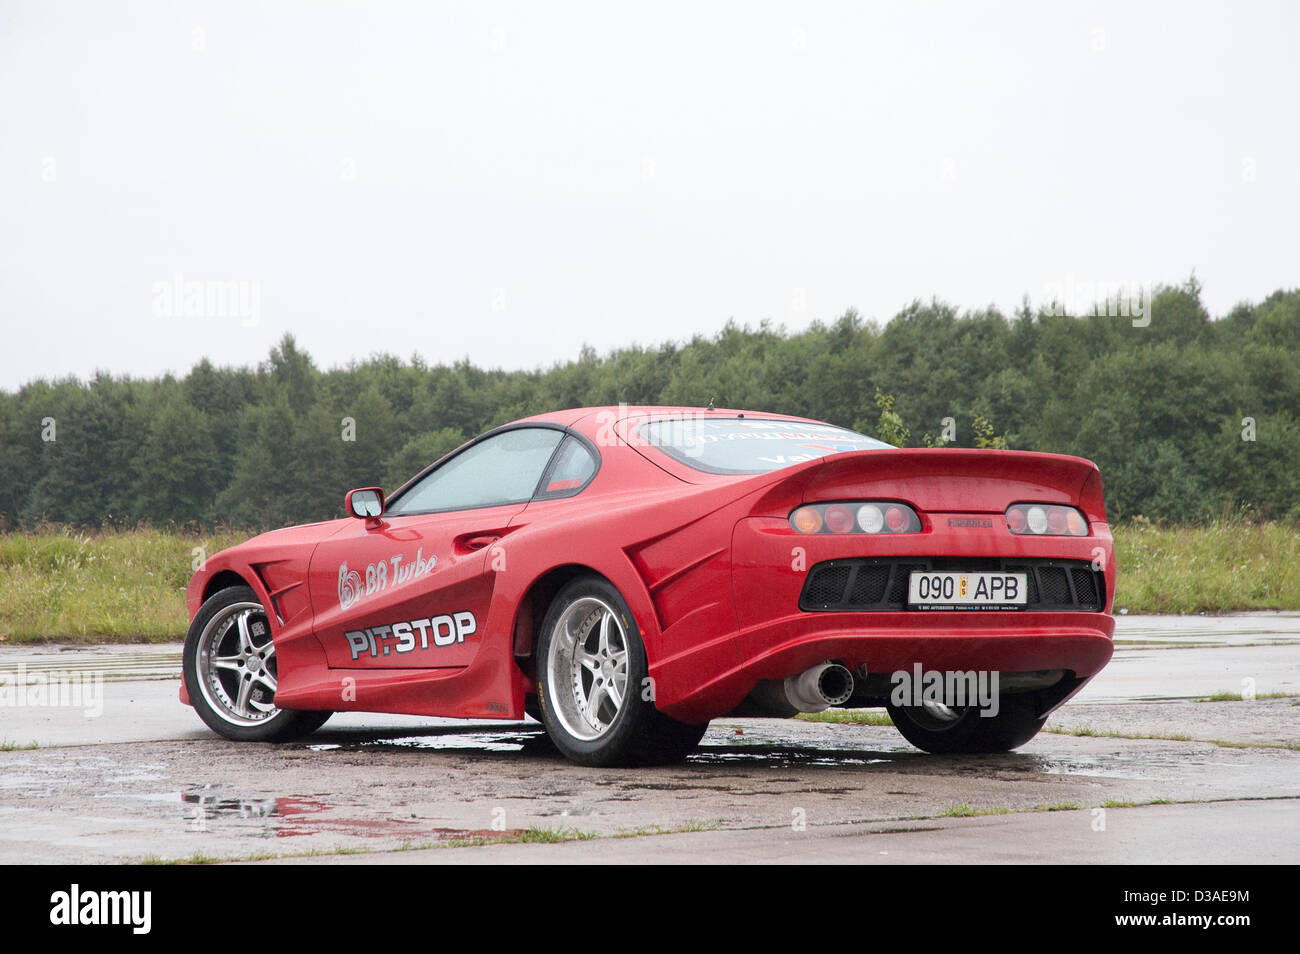 Red Tuned Toyota Supra In The Field Stock Photo 53705840 Alamy